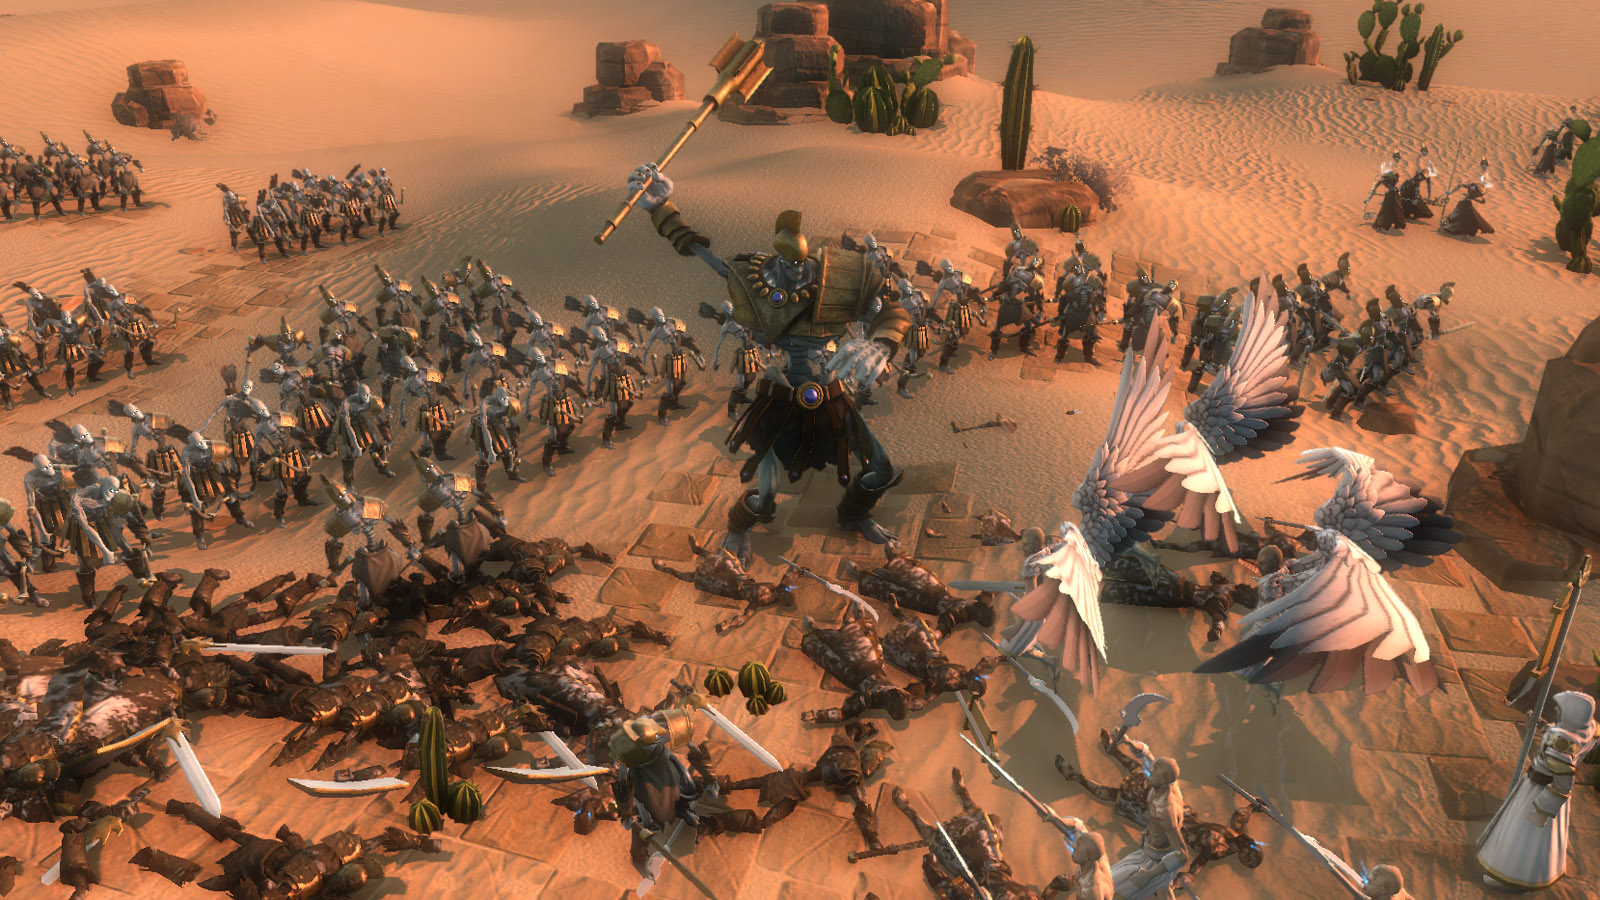 Age of Wonders, War, Battle, Game, Fantasy, Army, Armies, 4X